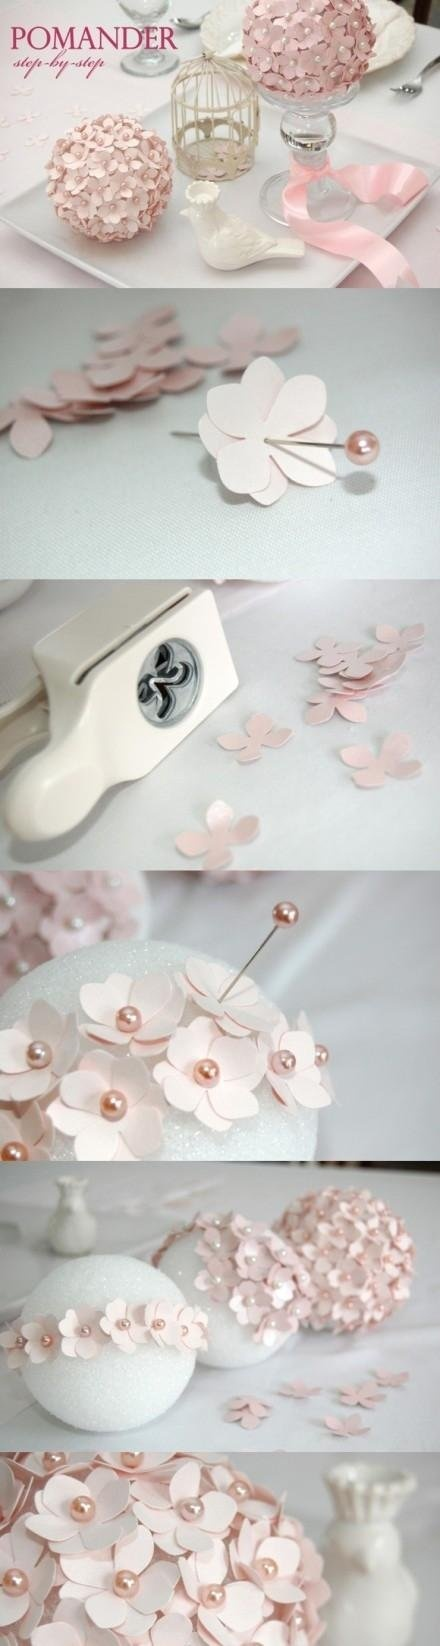 Beautiful and simple to make pomander